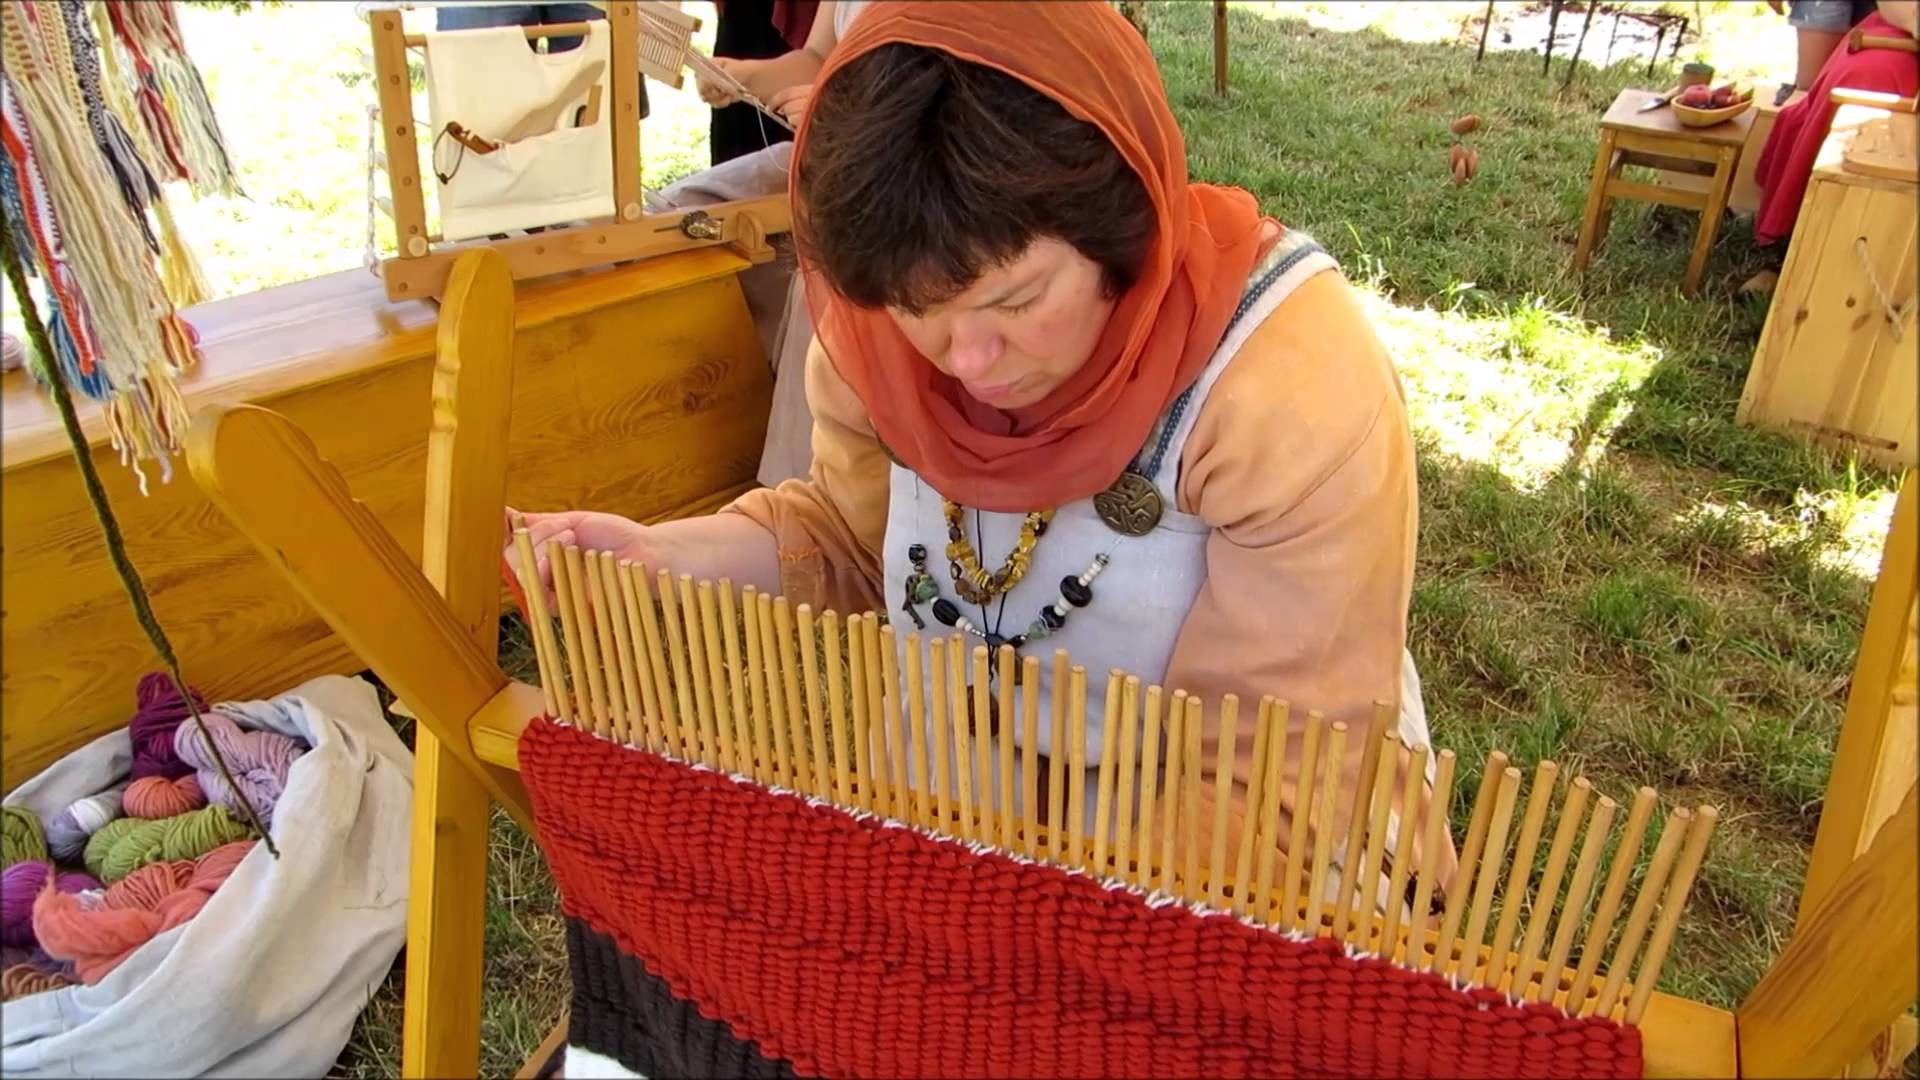 Stick Weaving - an experimental archaeology project